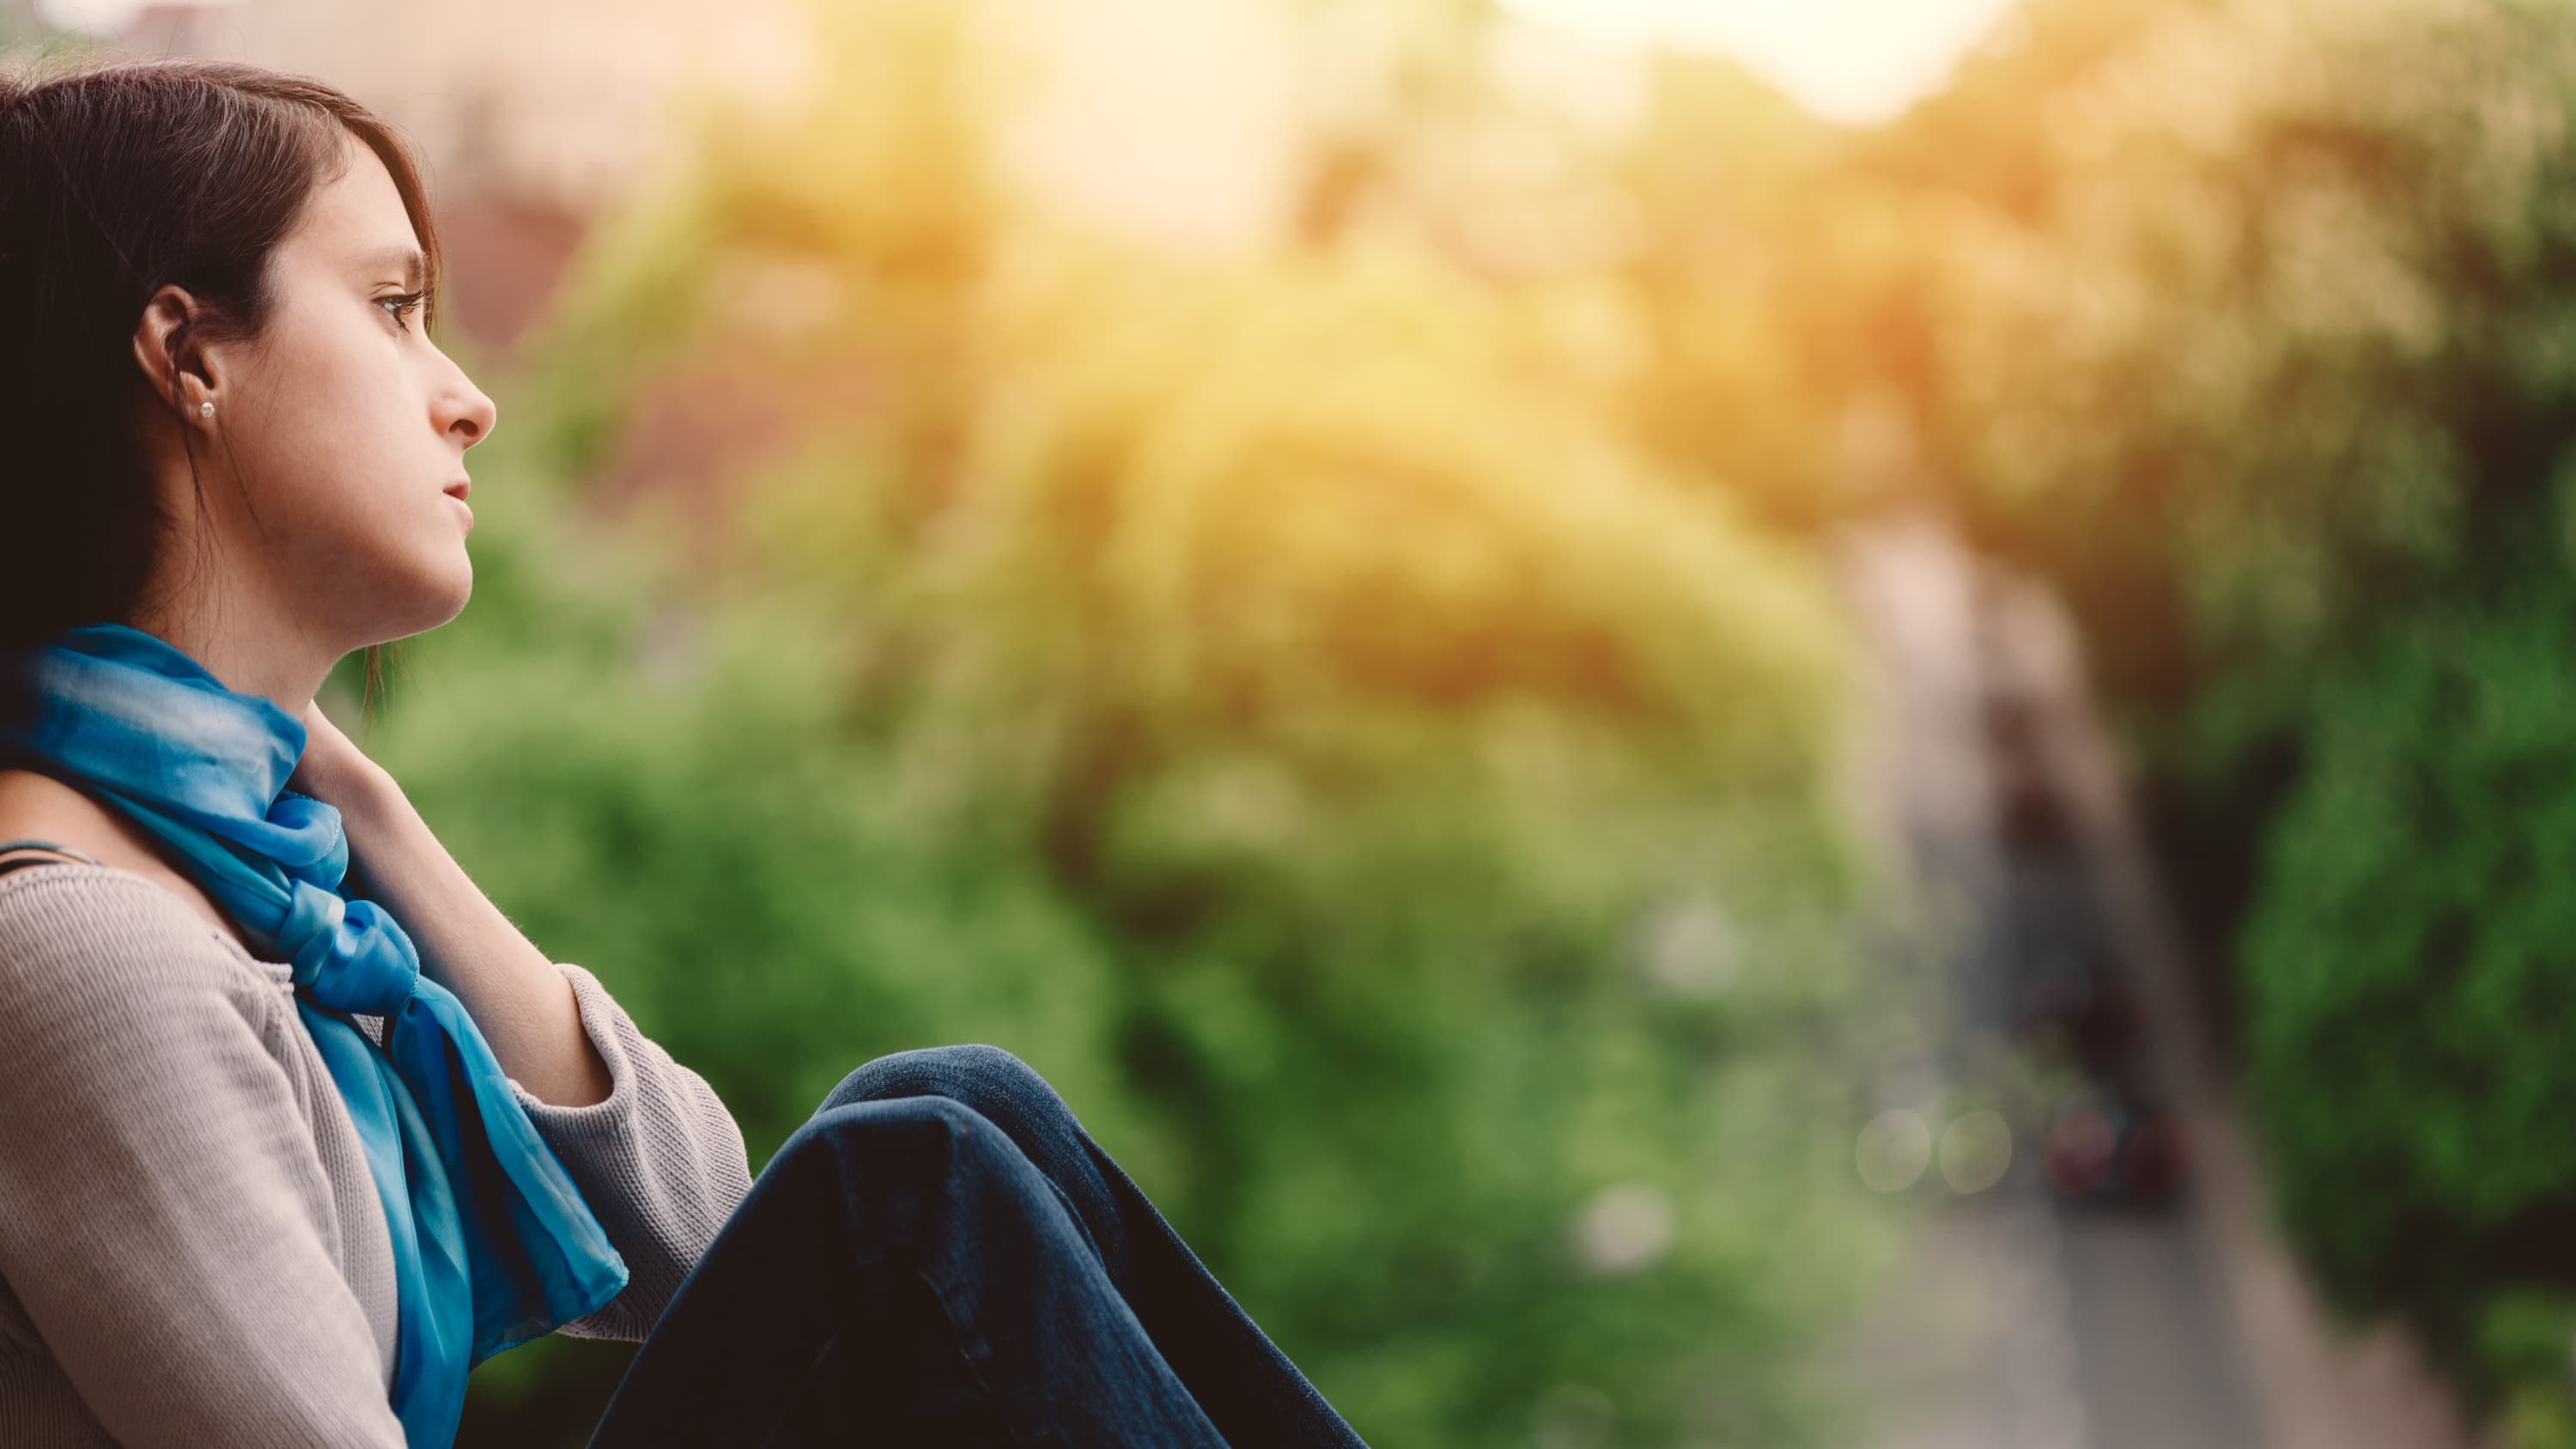 A young woman who is feeling suicidal sits alone outside.